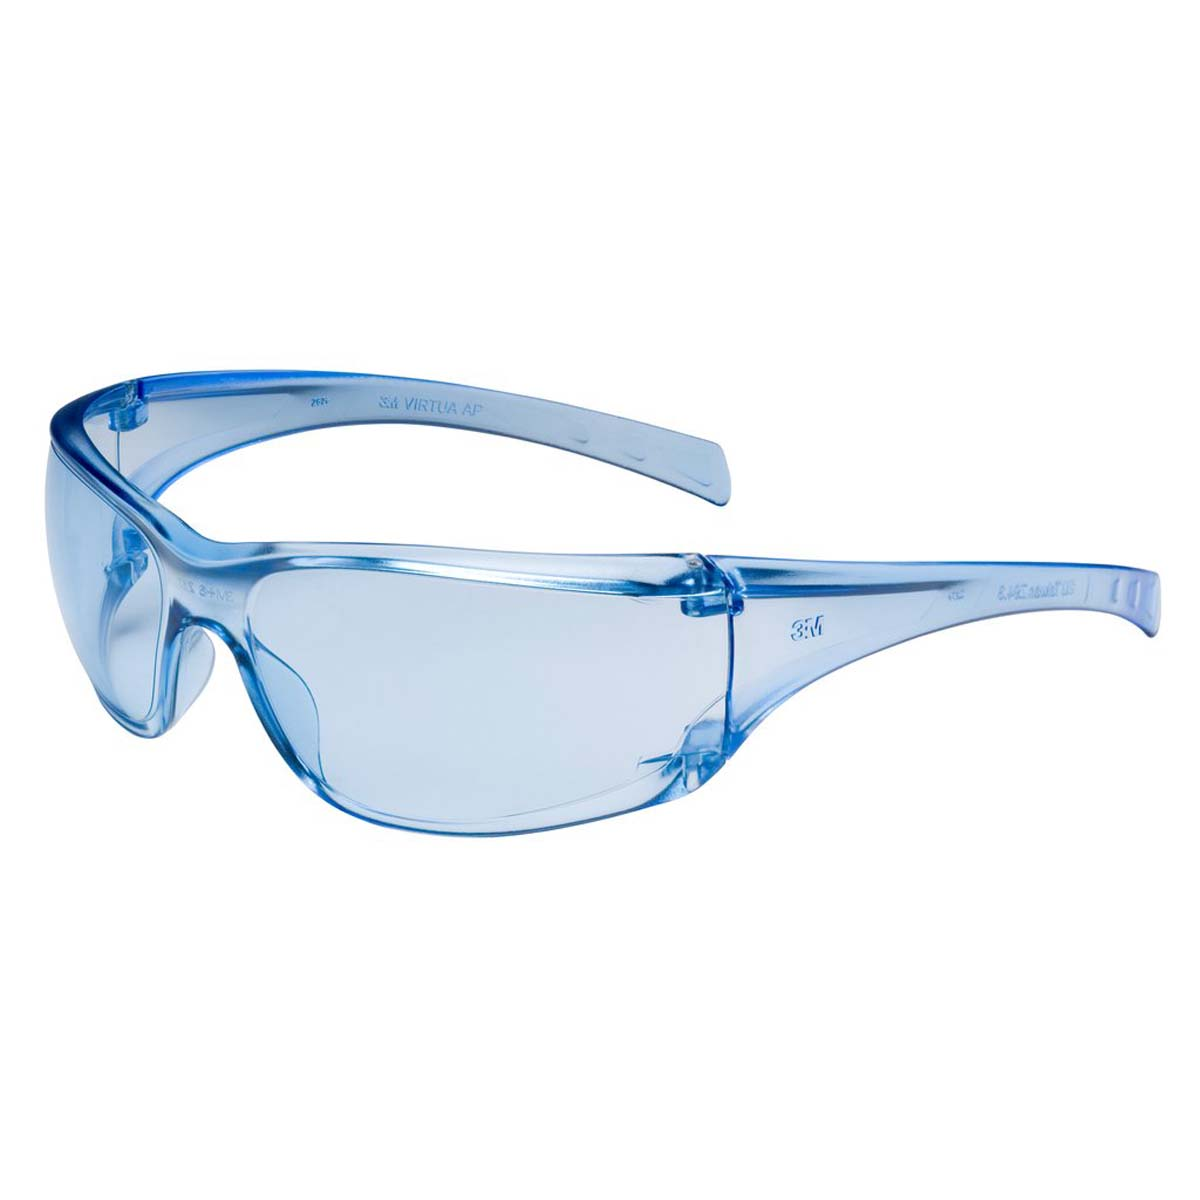 3M Virtua AP Protective Eyewear 11816-00000-20 Light Blue Hard Coat Lens,